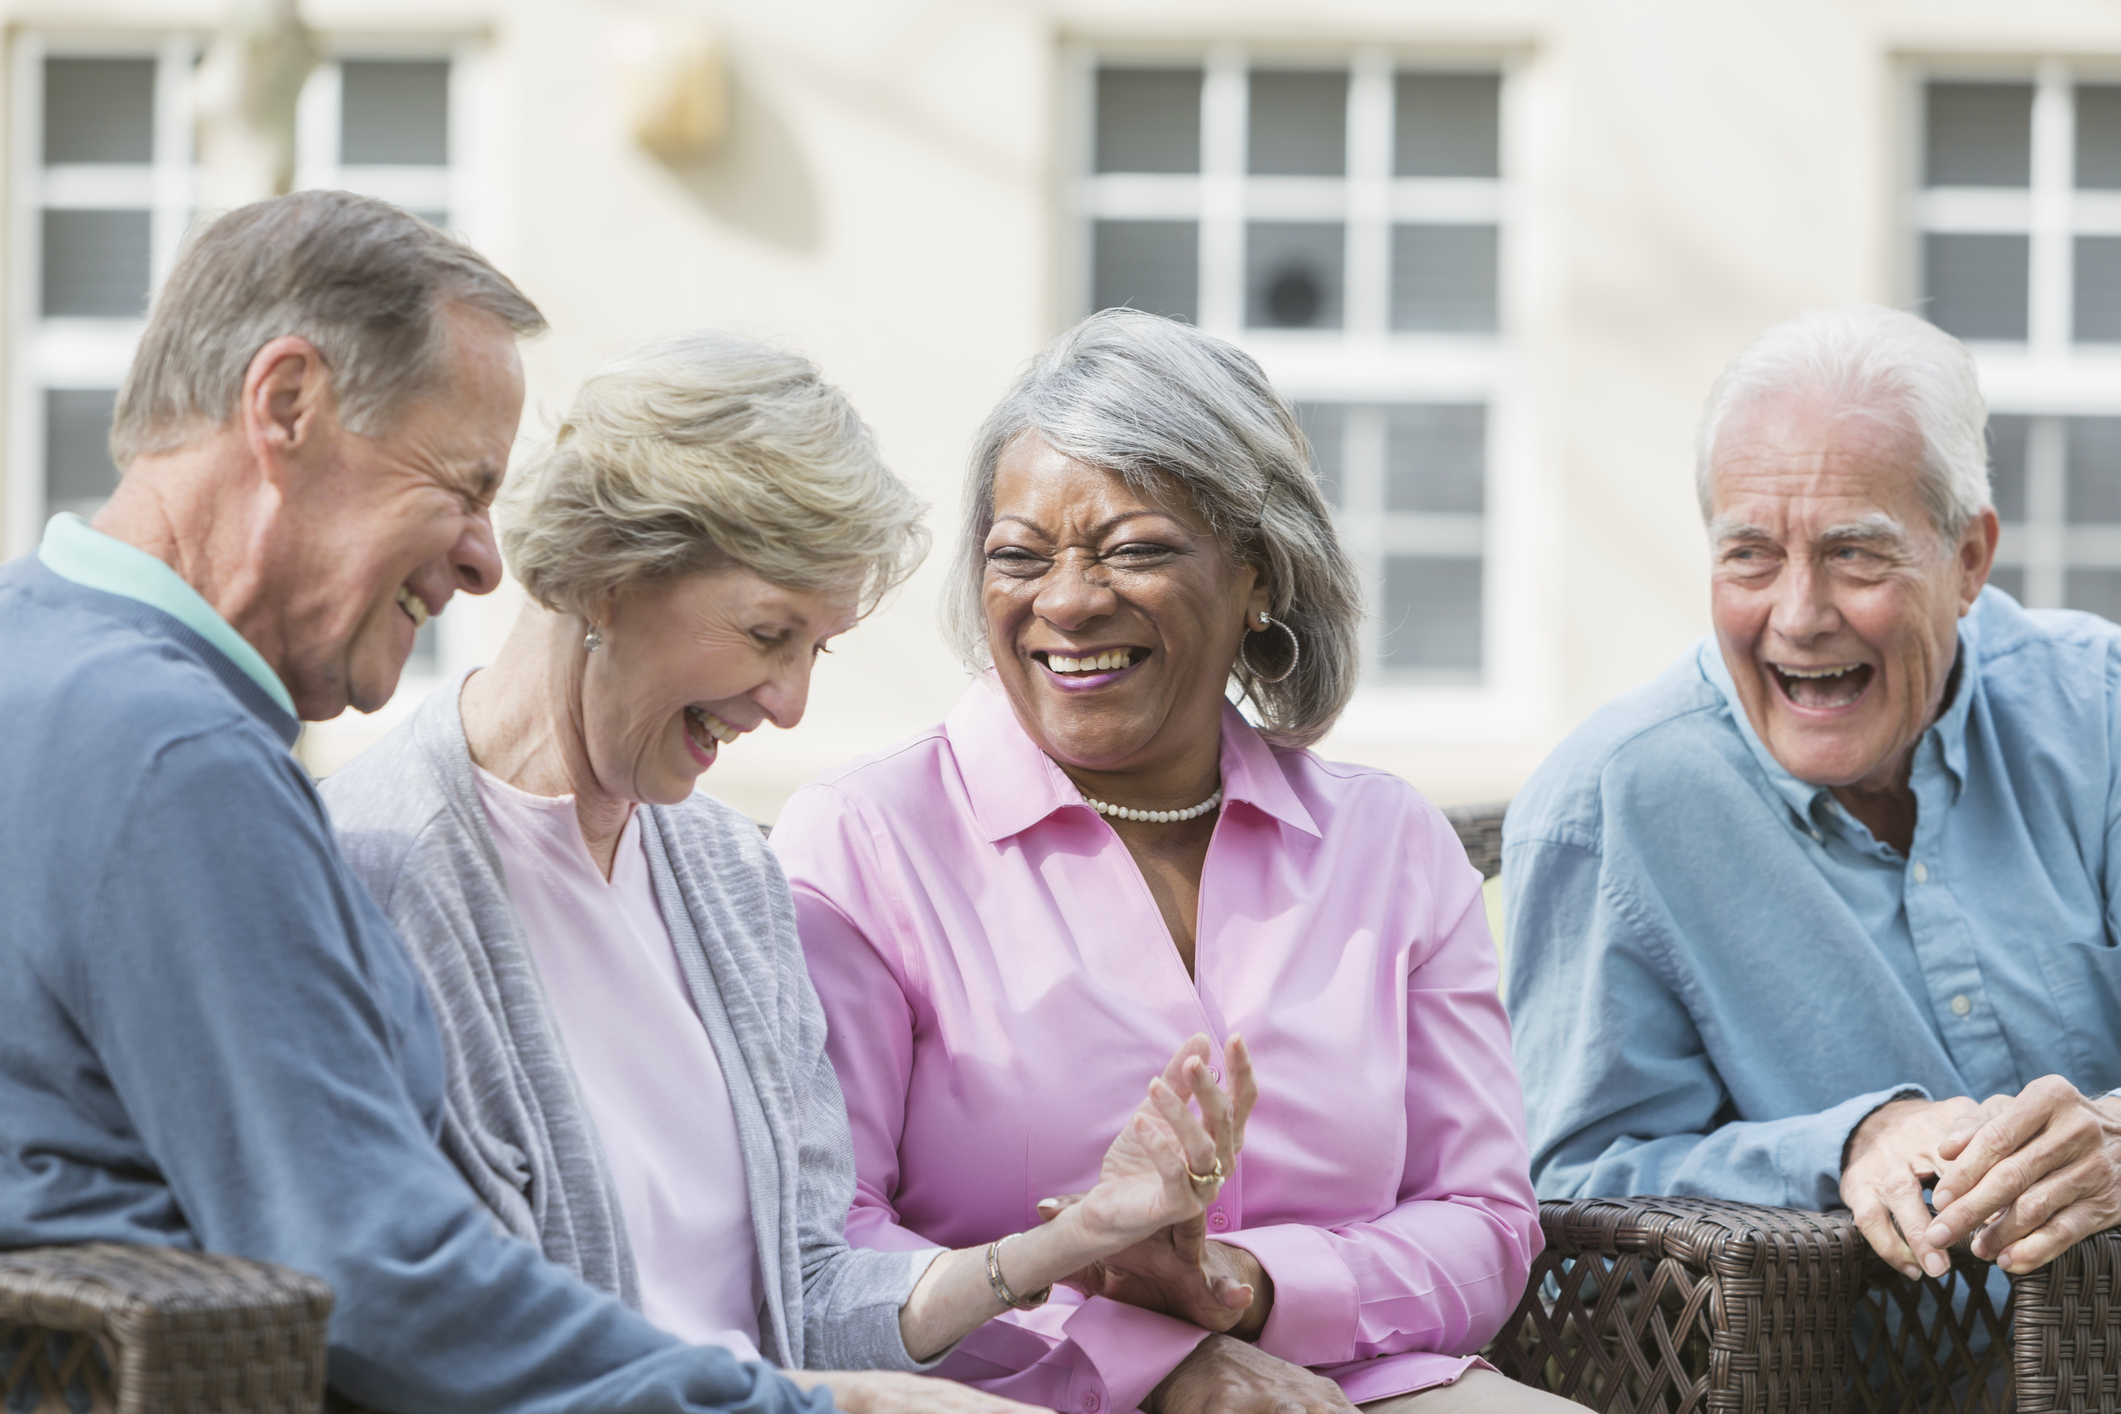 A group of four multi-ethnic seniors sitting together on patio furniture outdoors, talking and laughing. They are in retirement, relaxed and enjoying spending time with friends.